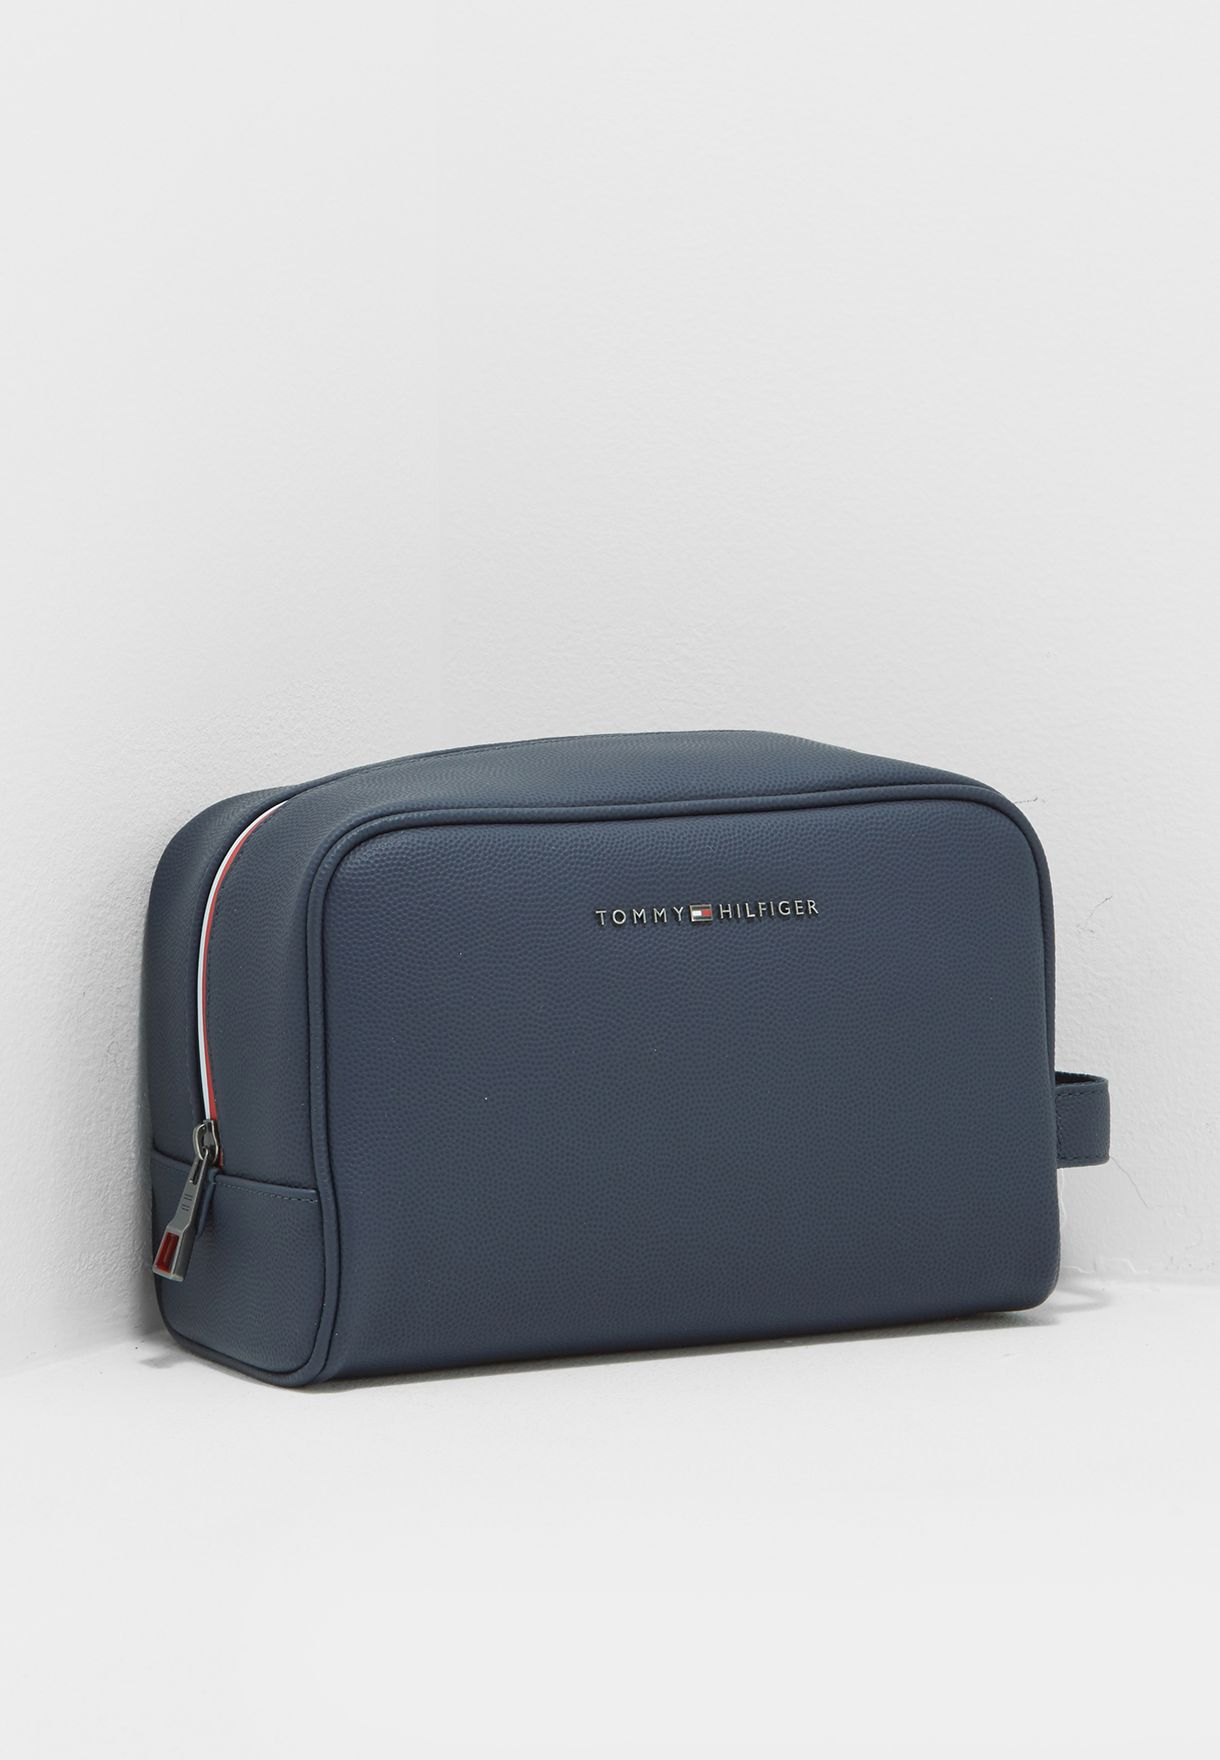 a992541e26 Shop Tommy Hilfiger navy Essential Toiletry Bag AM0AM02672413 for ...